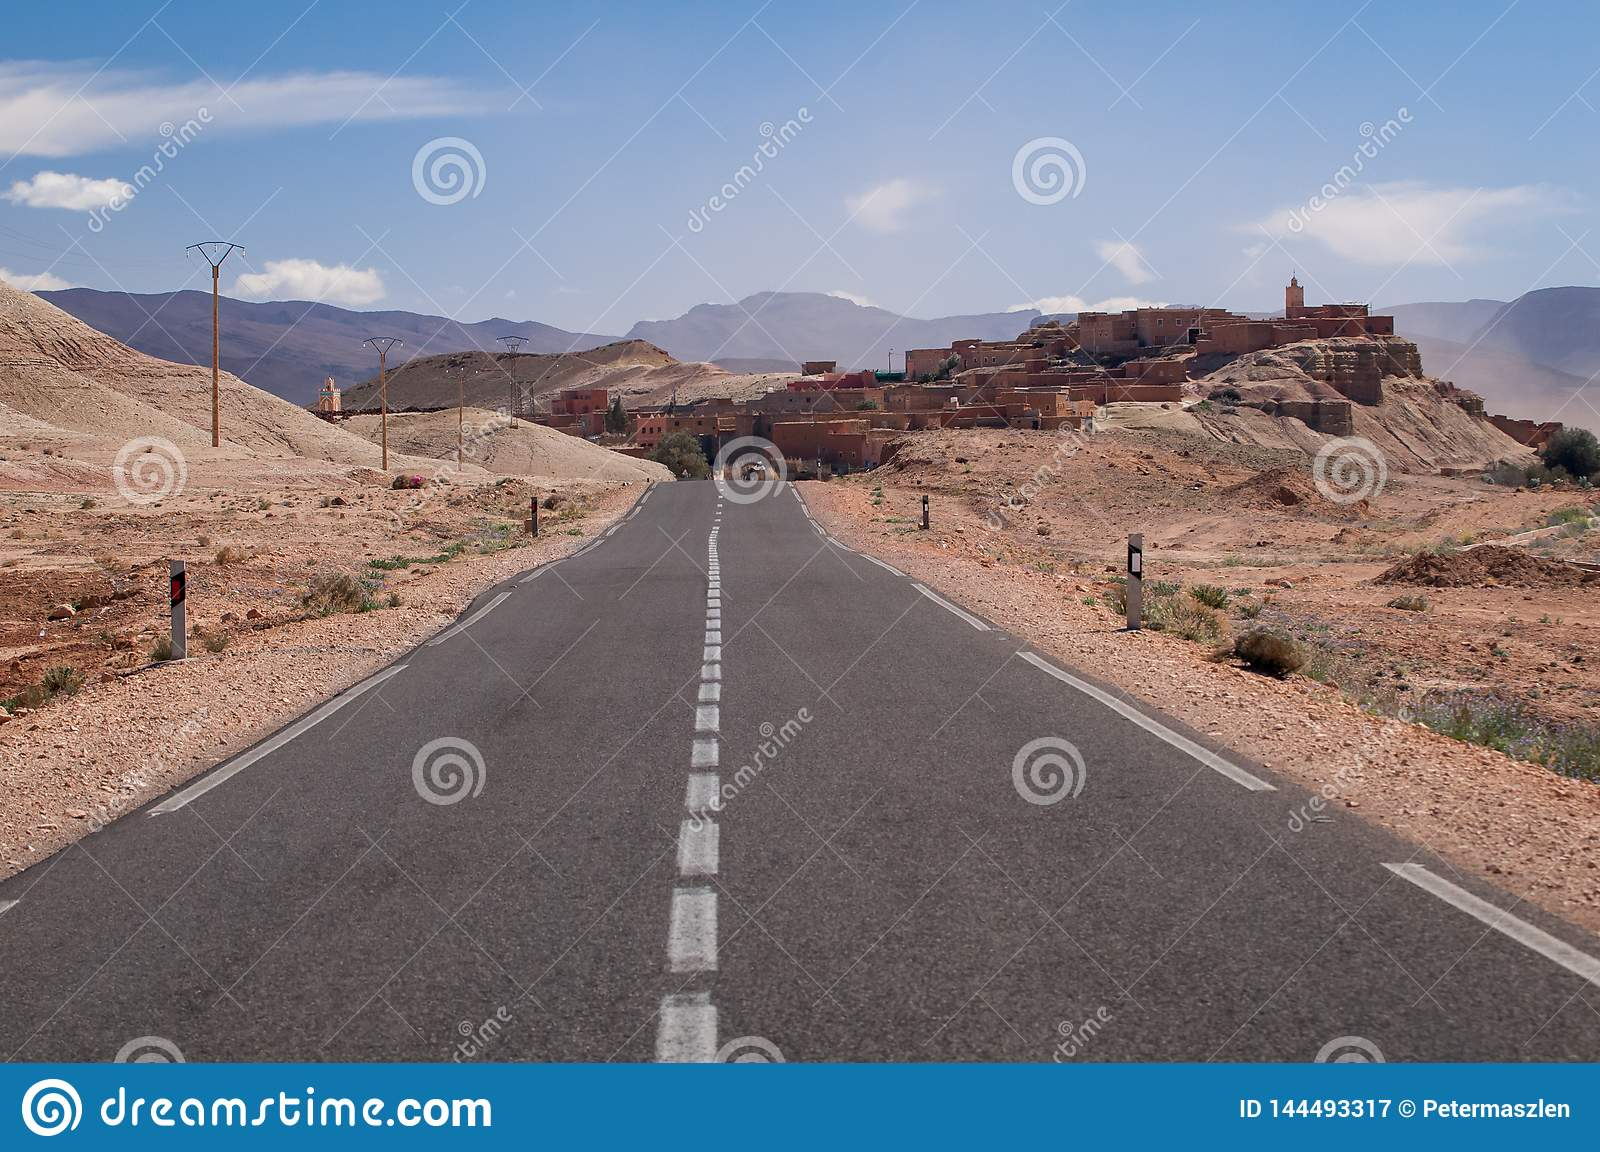 Lonely road to a small village in the desert of Morocco